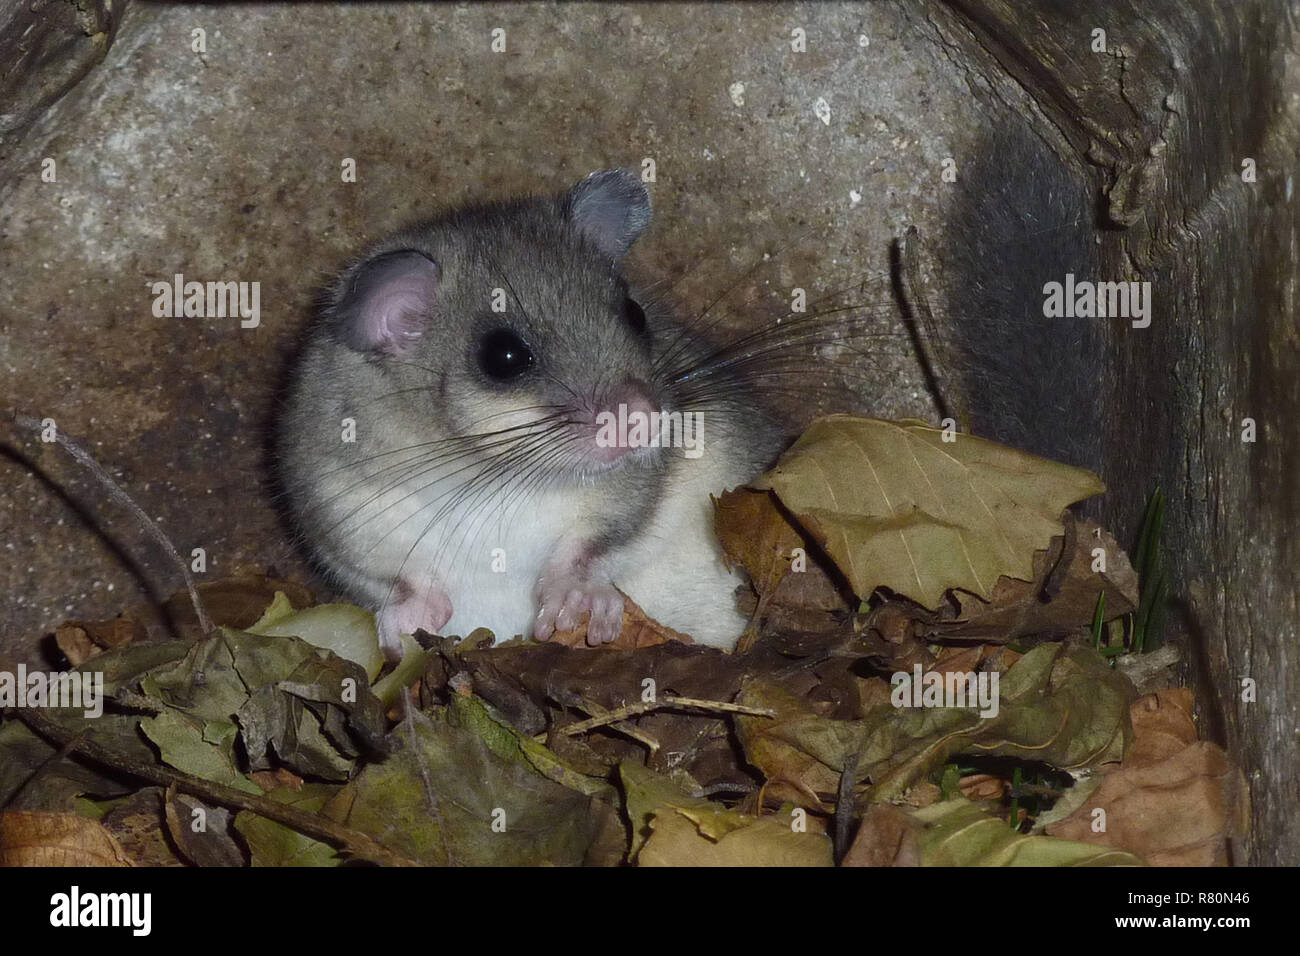 Edible Dormouse (Glis glis). Dormice only stay in summer quarters until daytime and nighttime temperatures remain near freezing or below. This animal was the last to spend another day in the nesting box. Germany - Stock Image